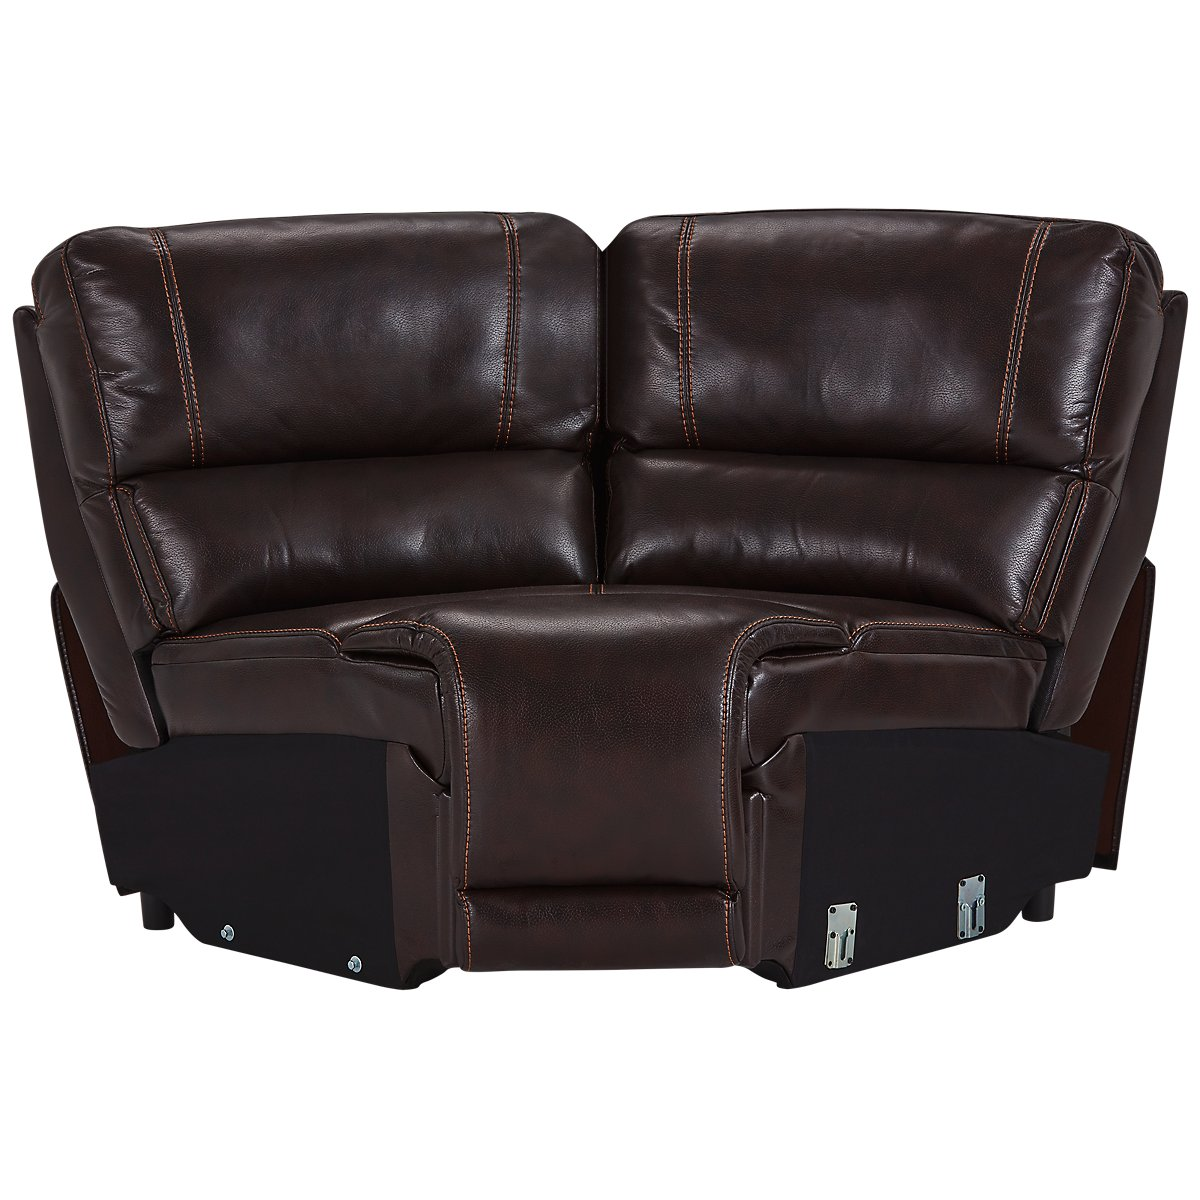 Sectional Couch Hattiesburg Ms: City Furniture: Bailey Dark Brown Microfiber Small Triple